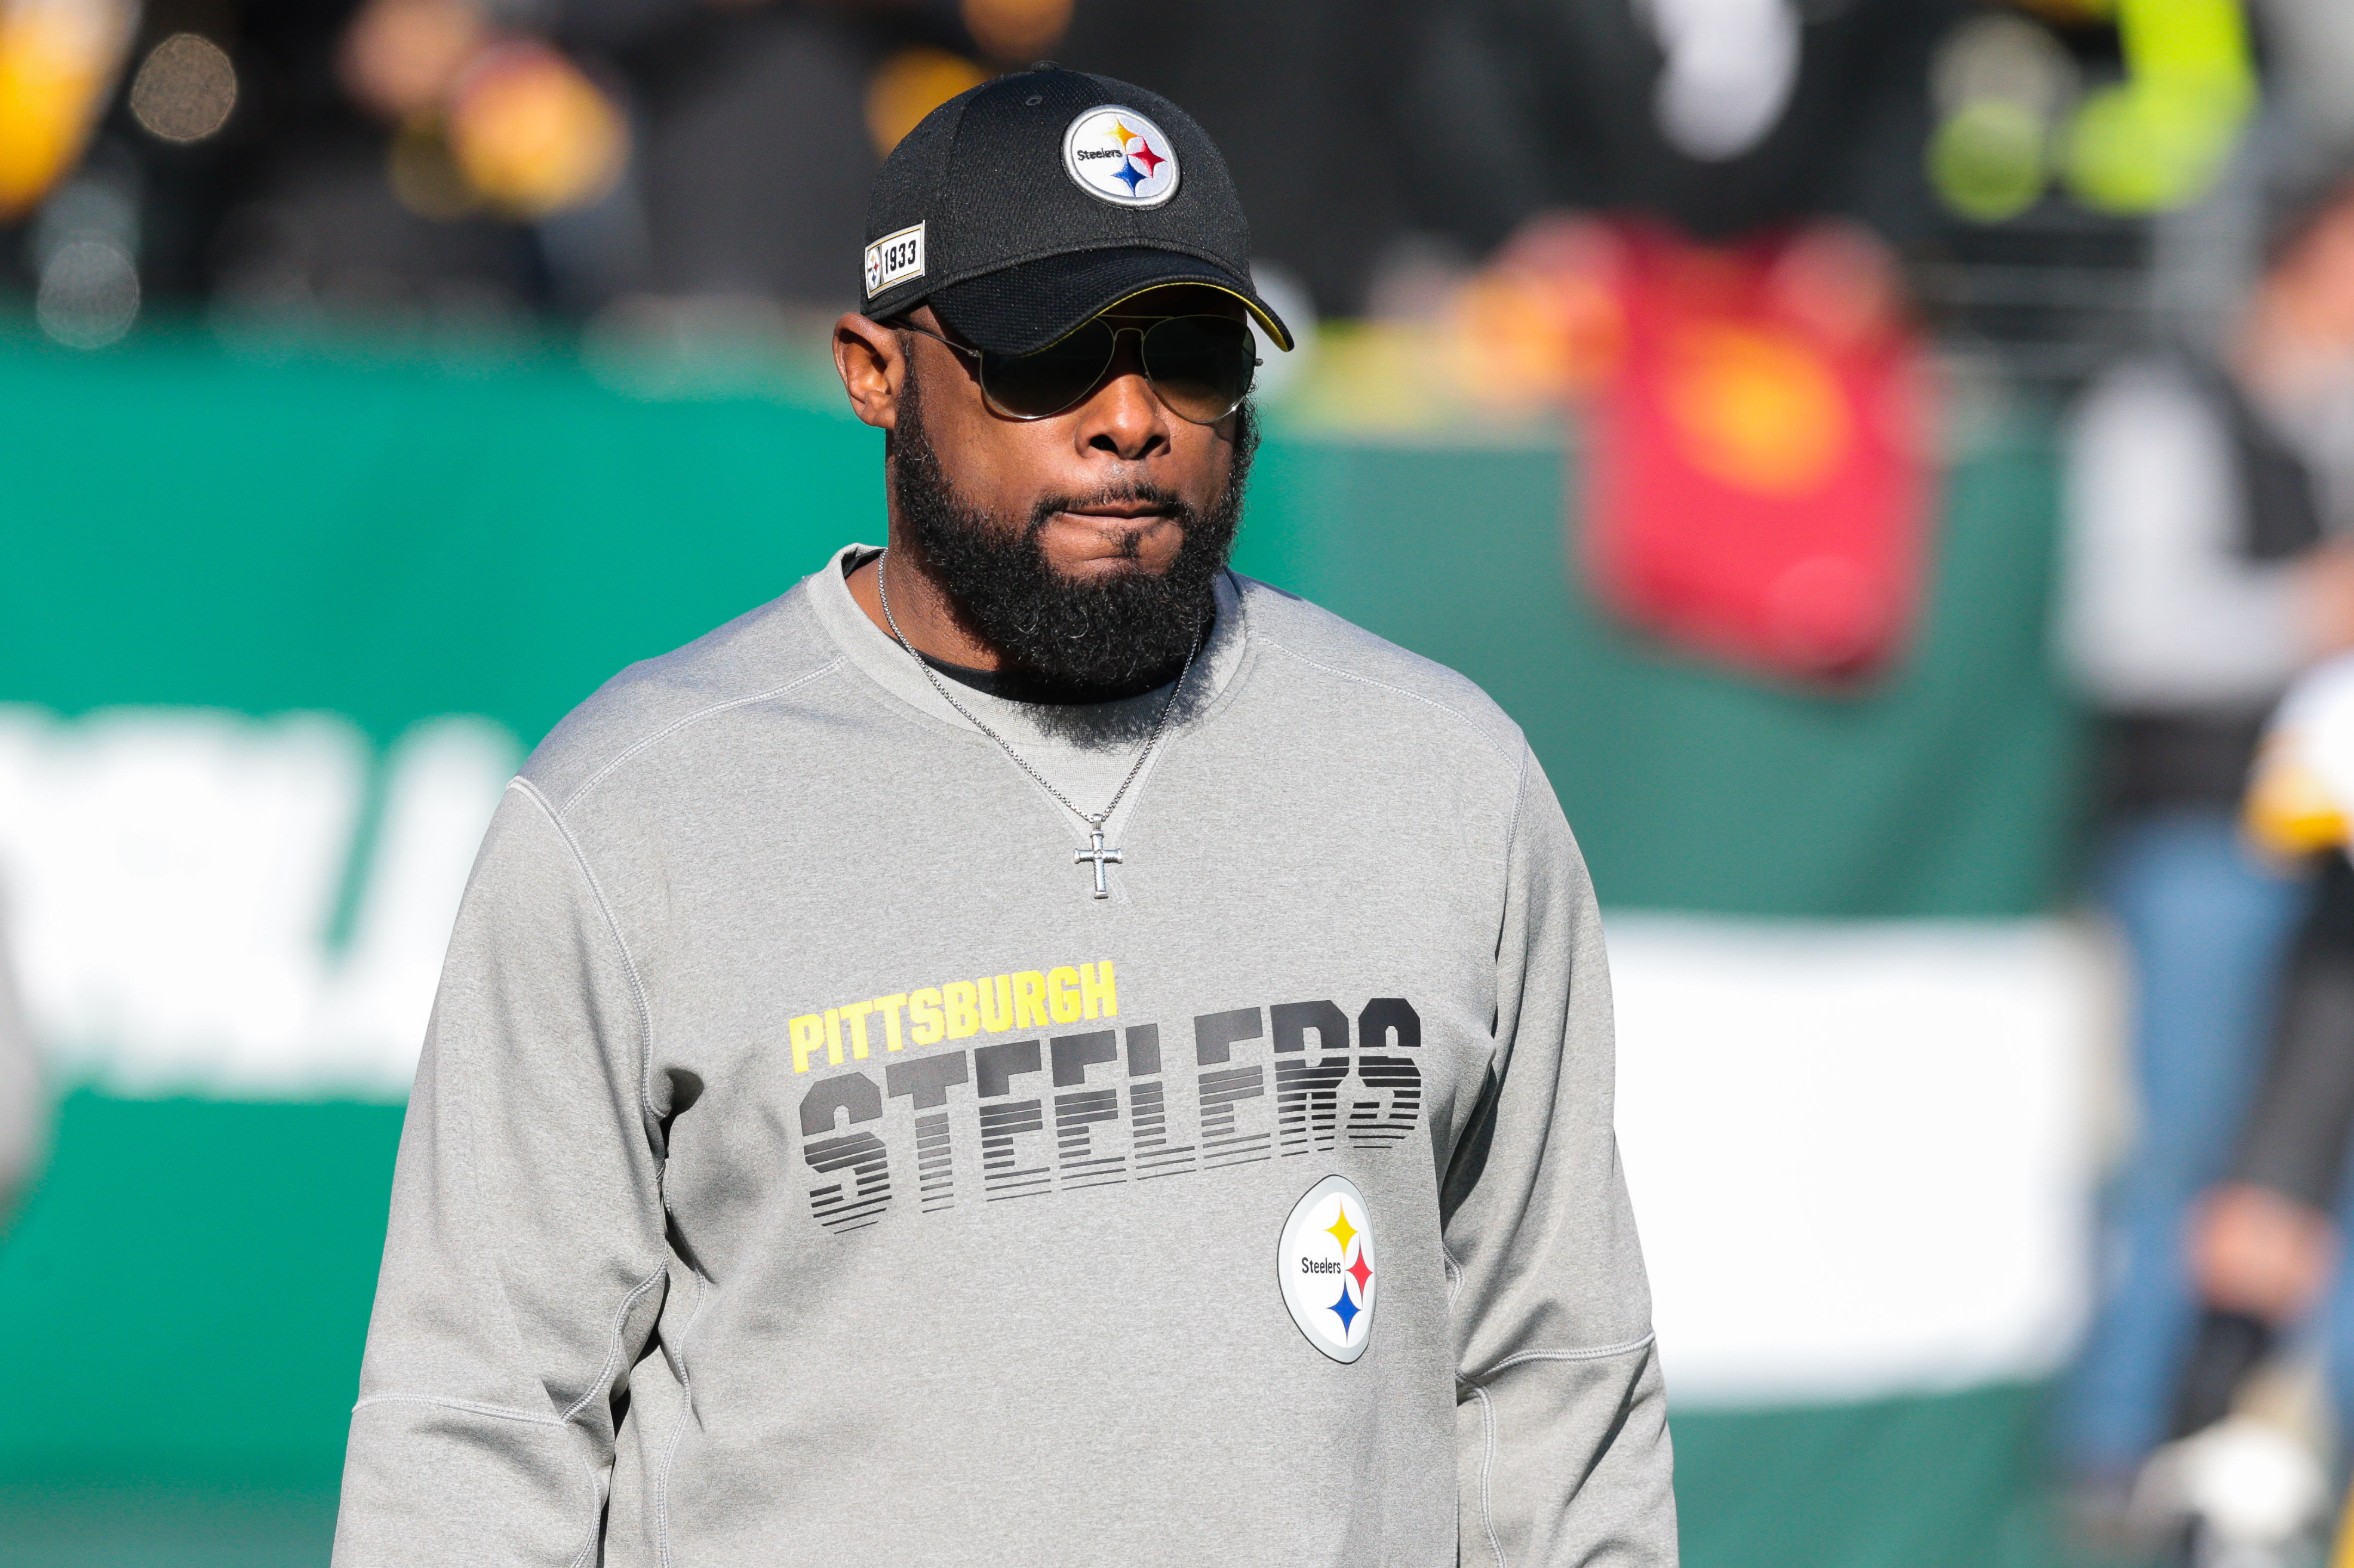 NFL: Pittsburgh Steelers at New York Jets